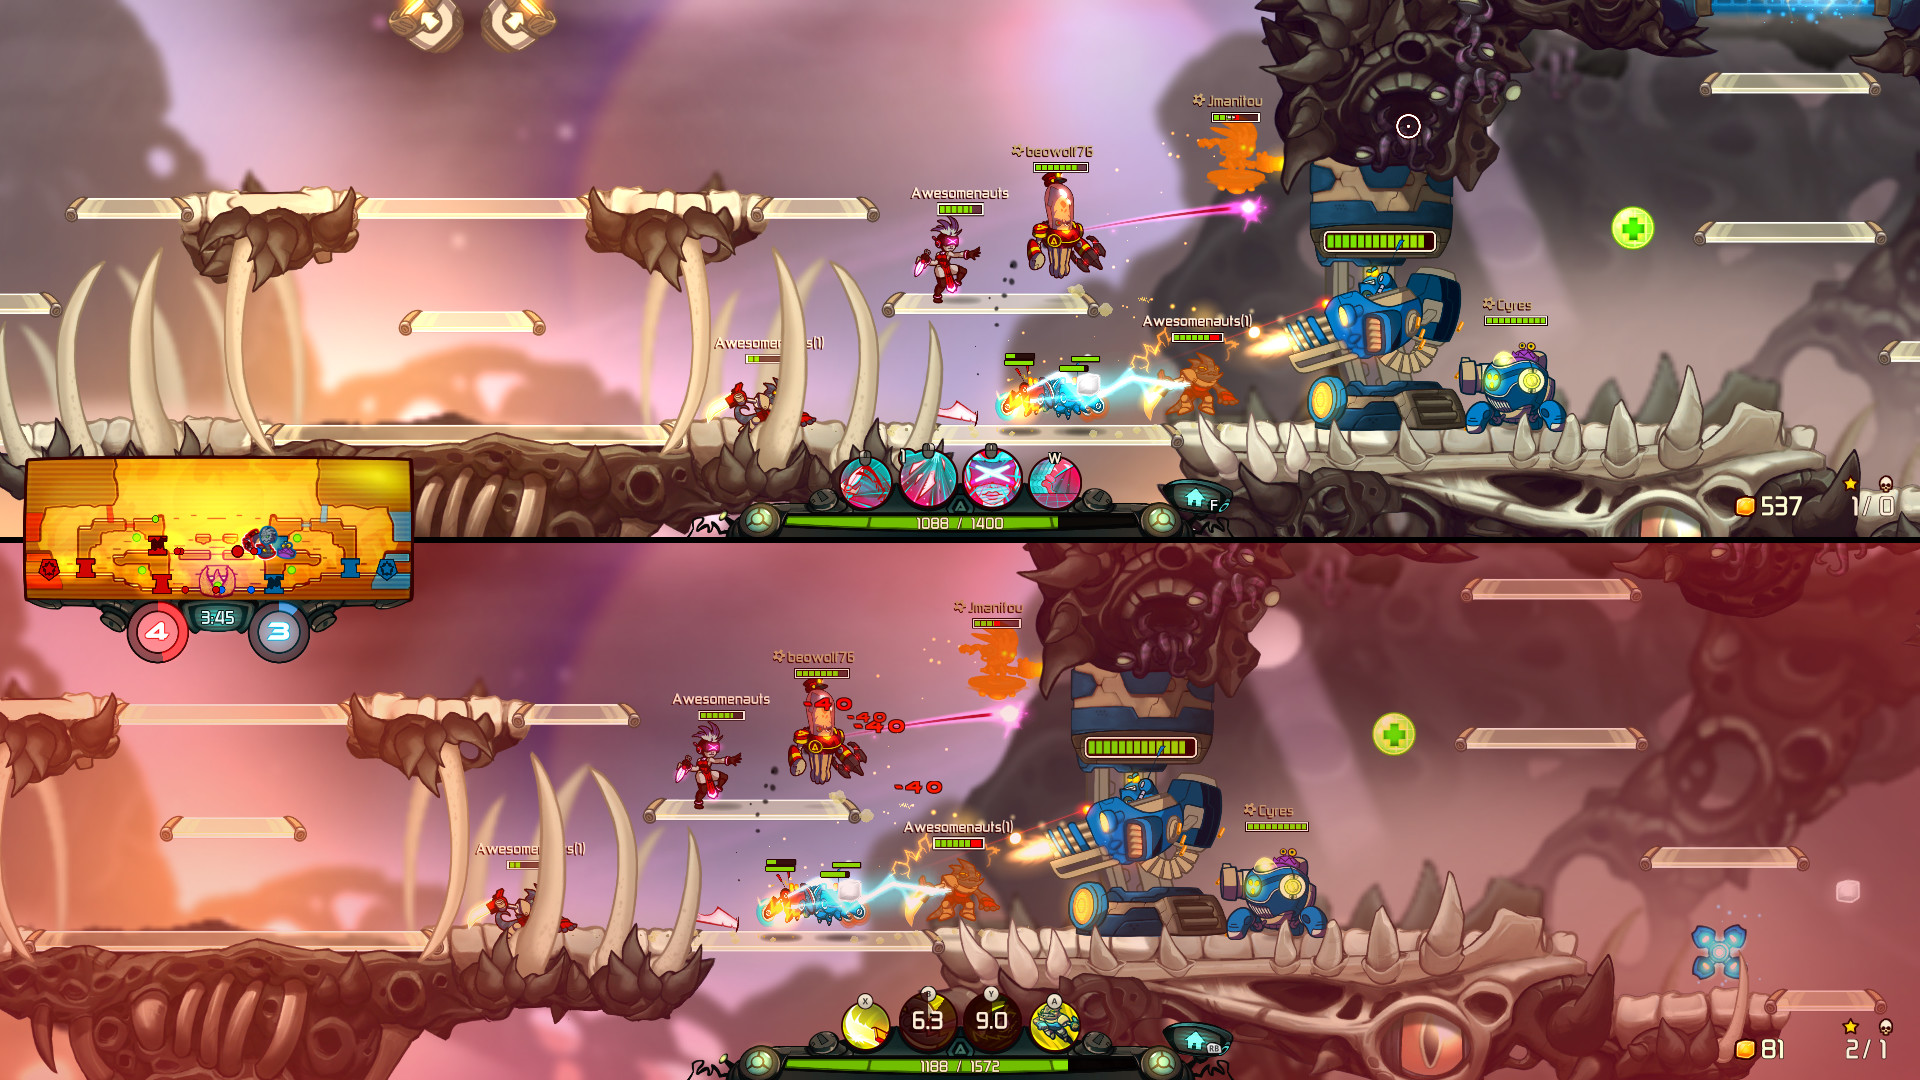 Awesomenauts Gameplay Screenshot 3